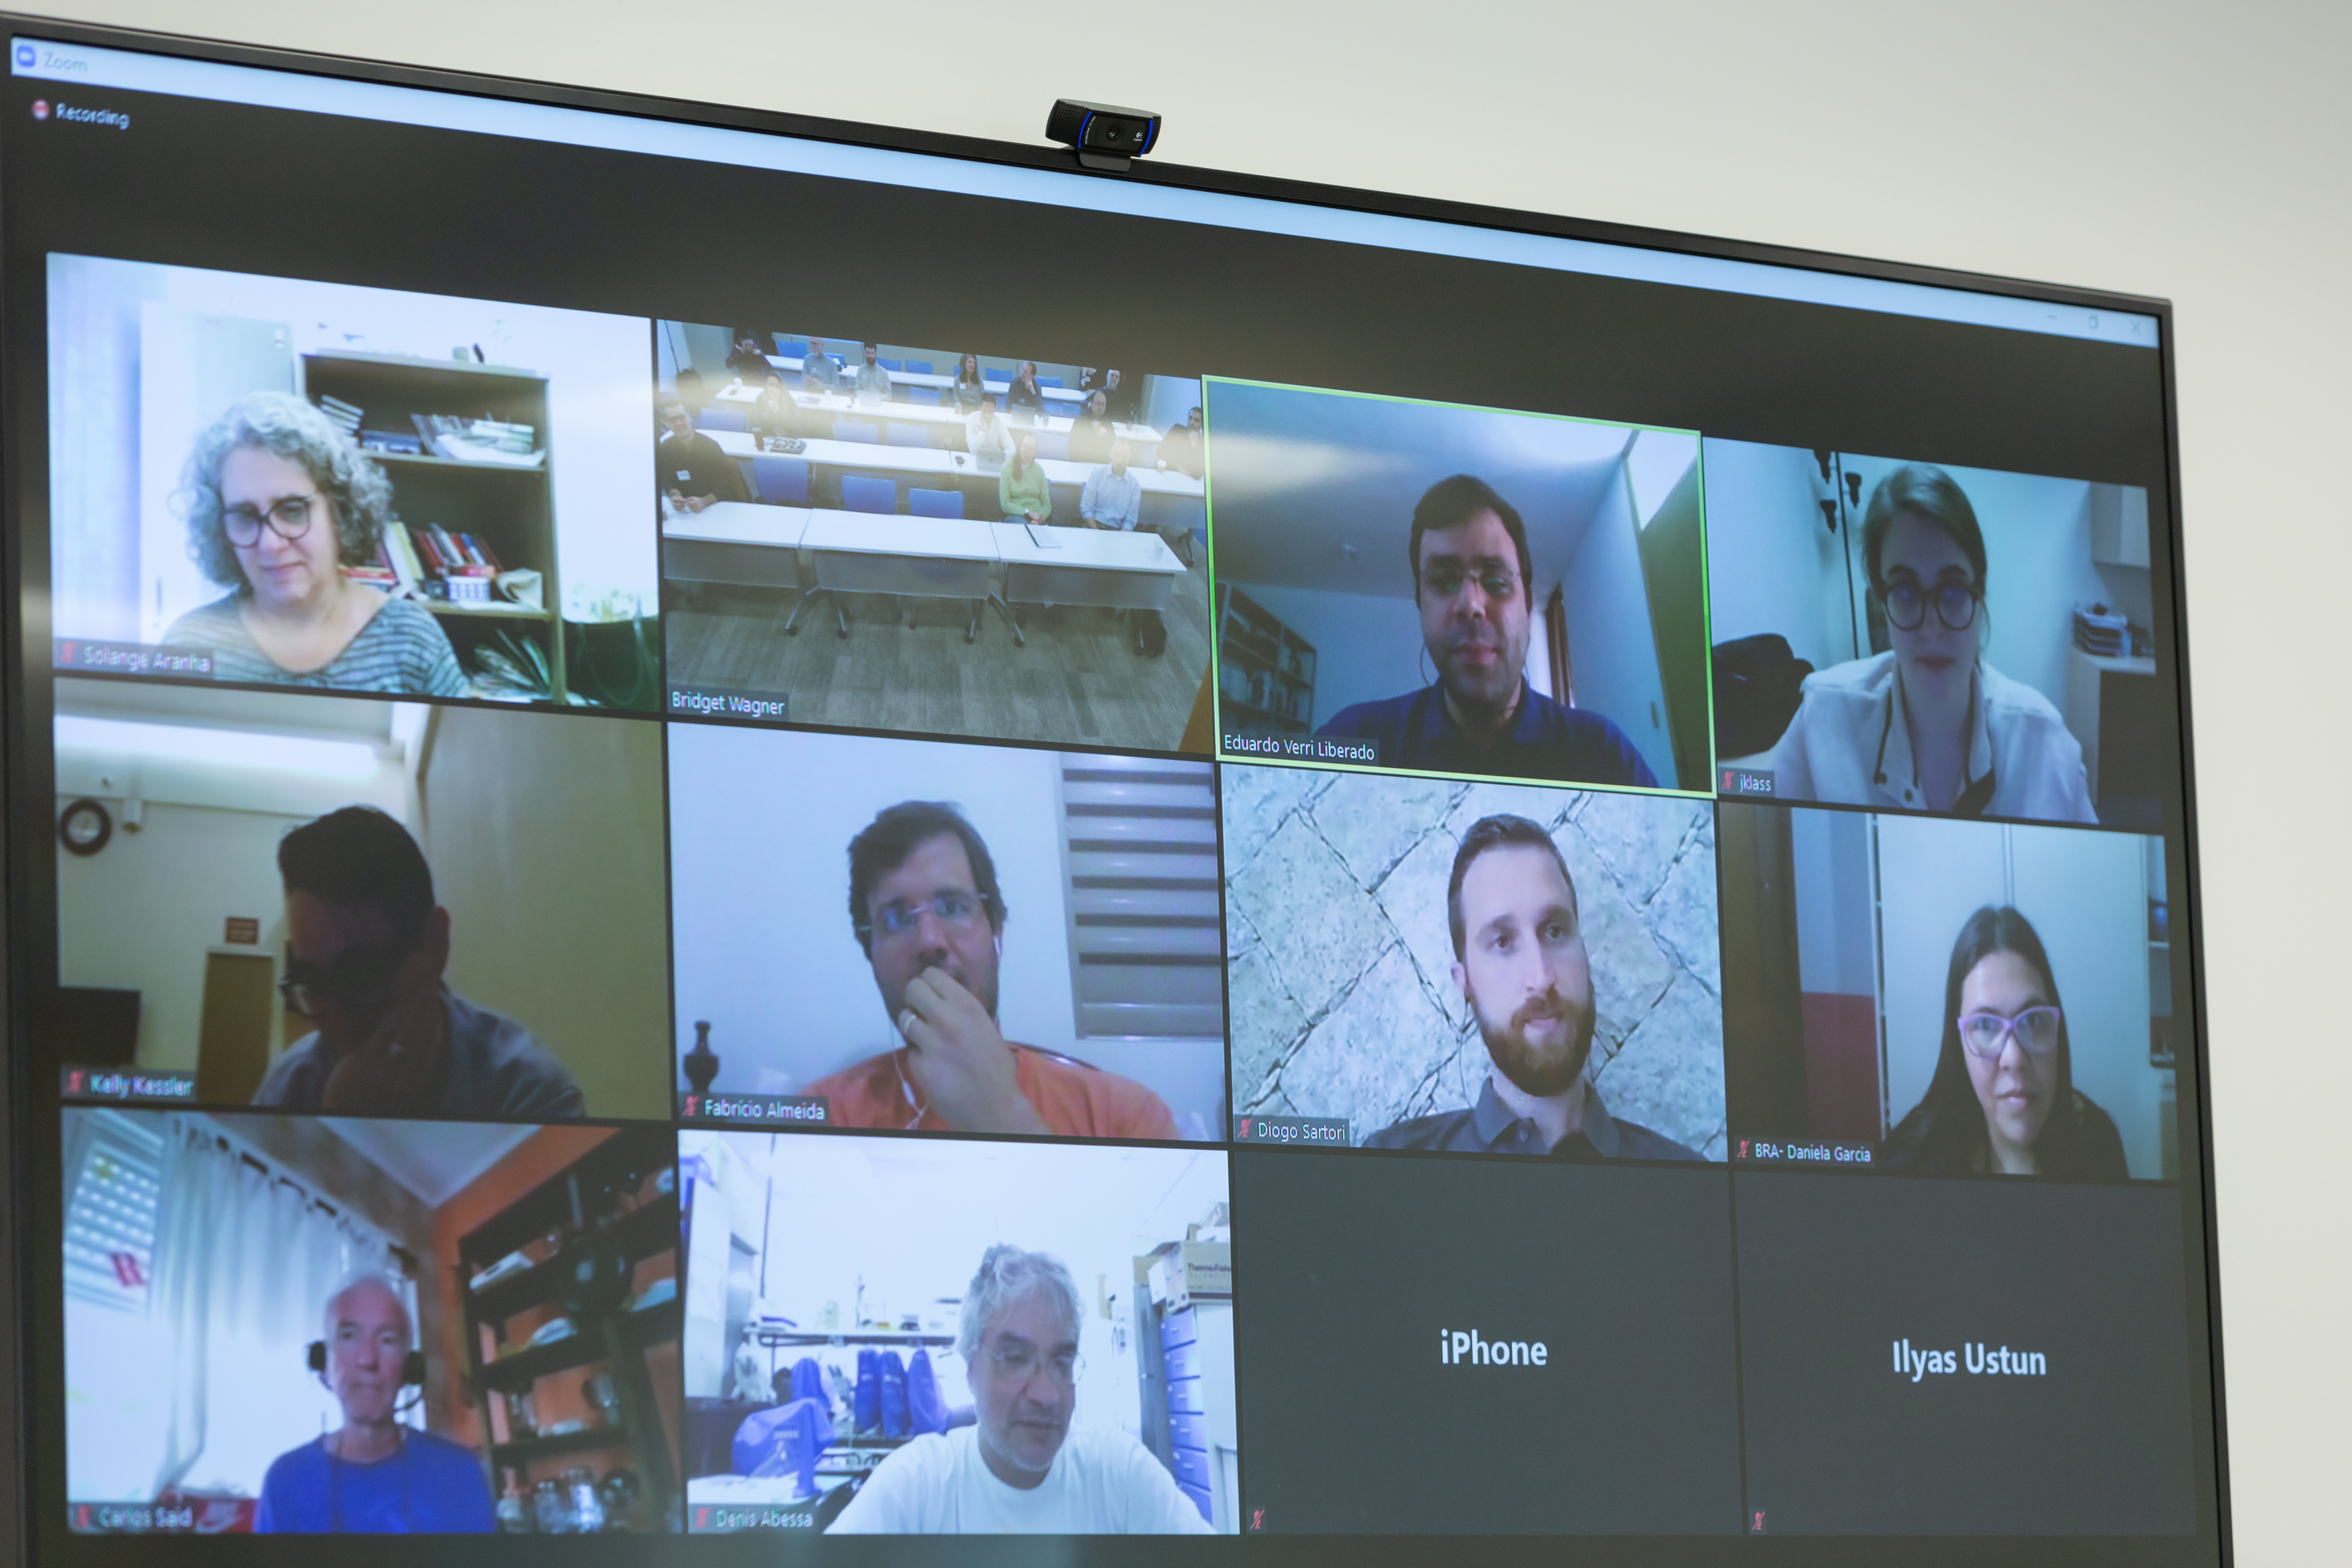 video screen of conference call participants